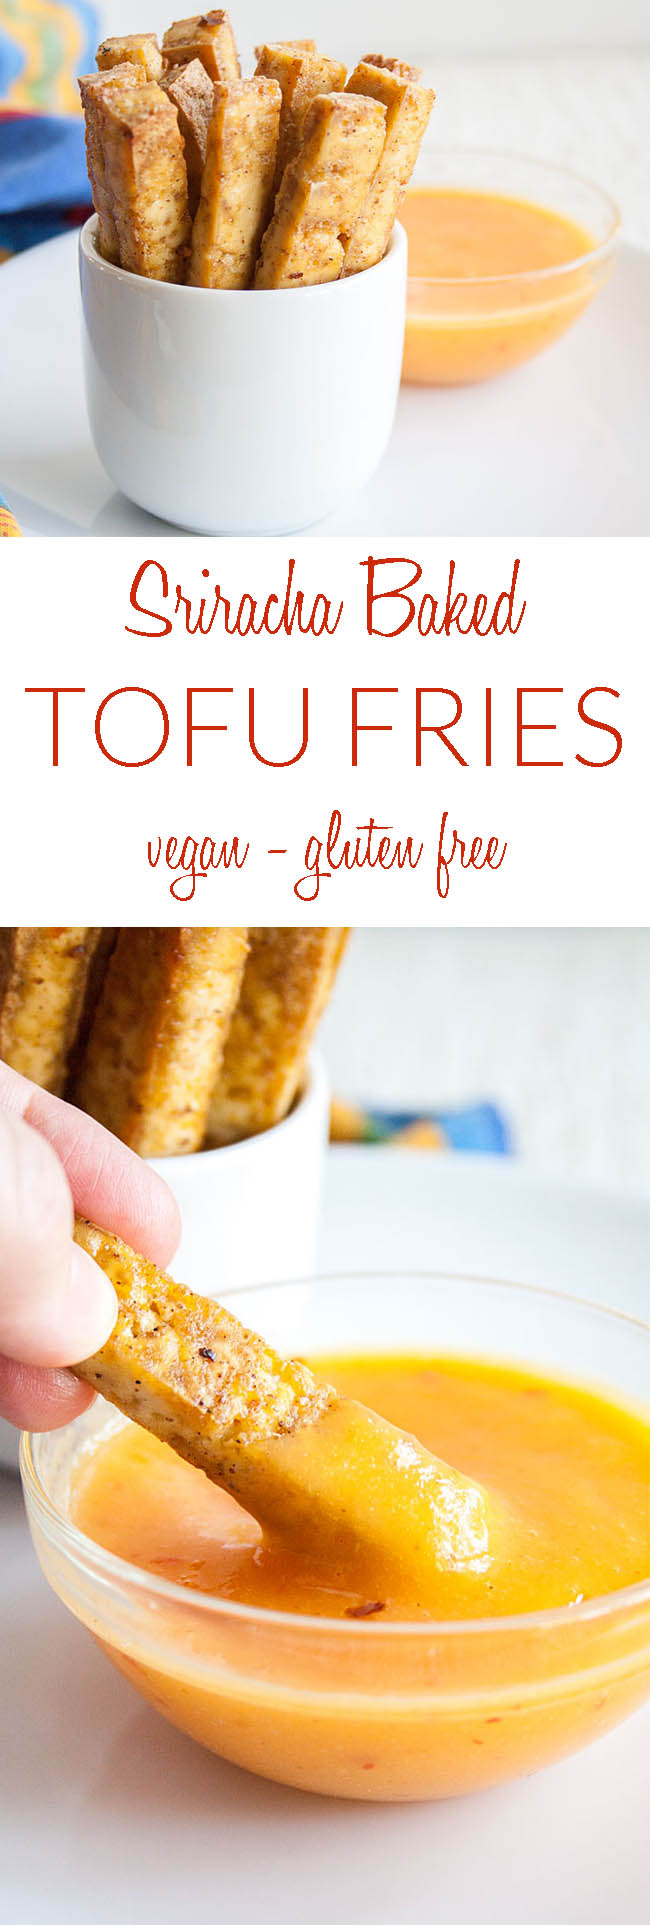 Spicy Tofu Fries collage photo with text.